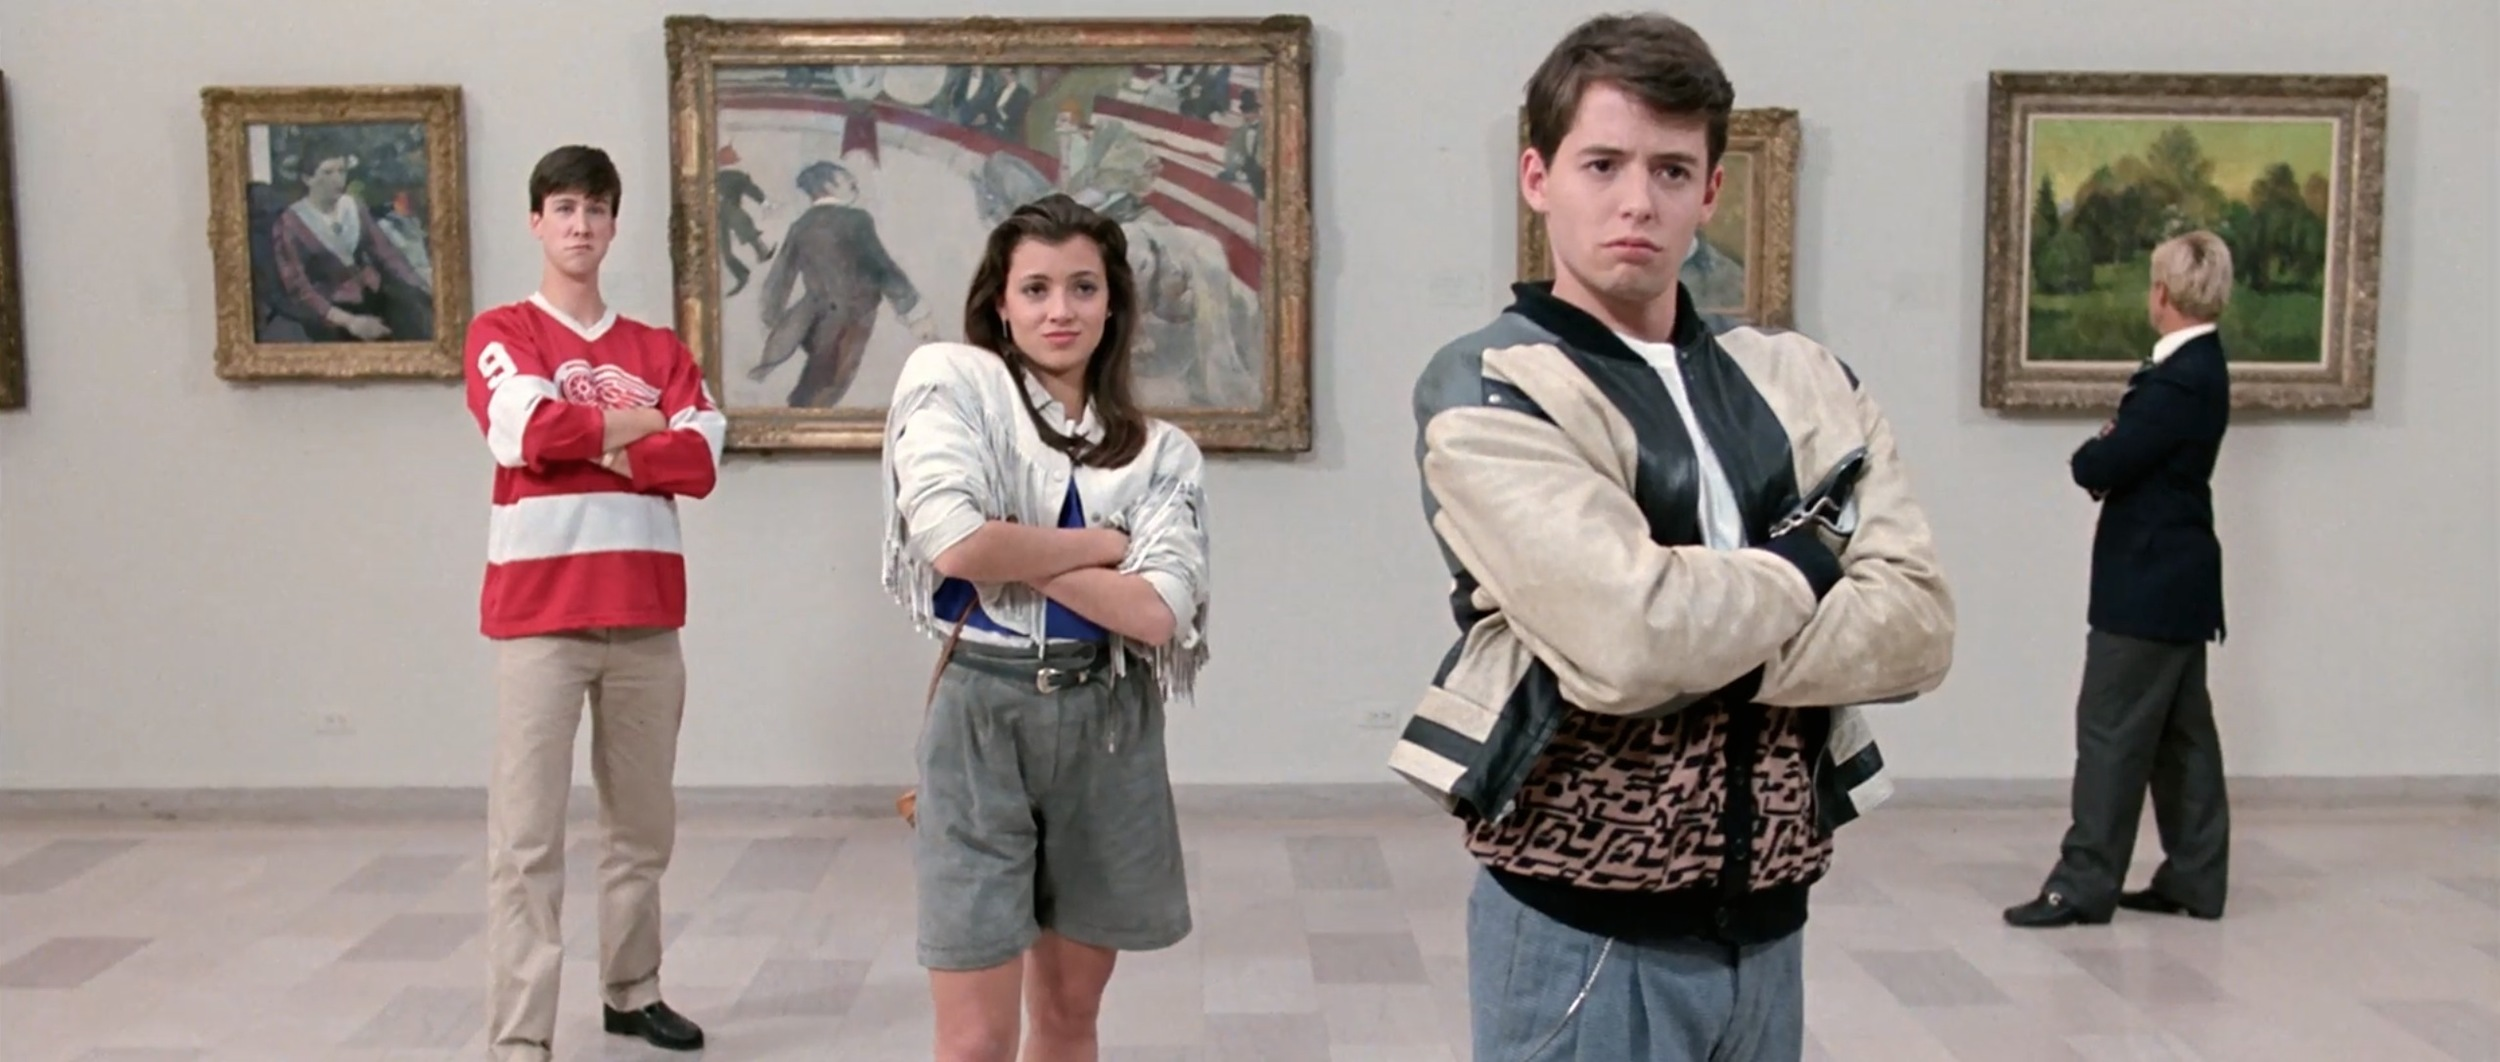 Cast from Ferris Bueller's Day Off